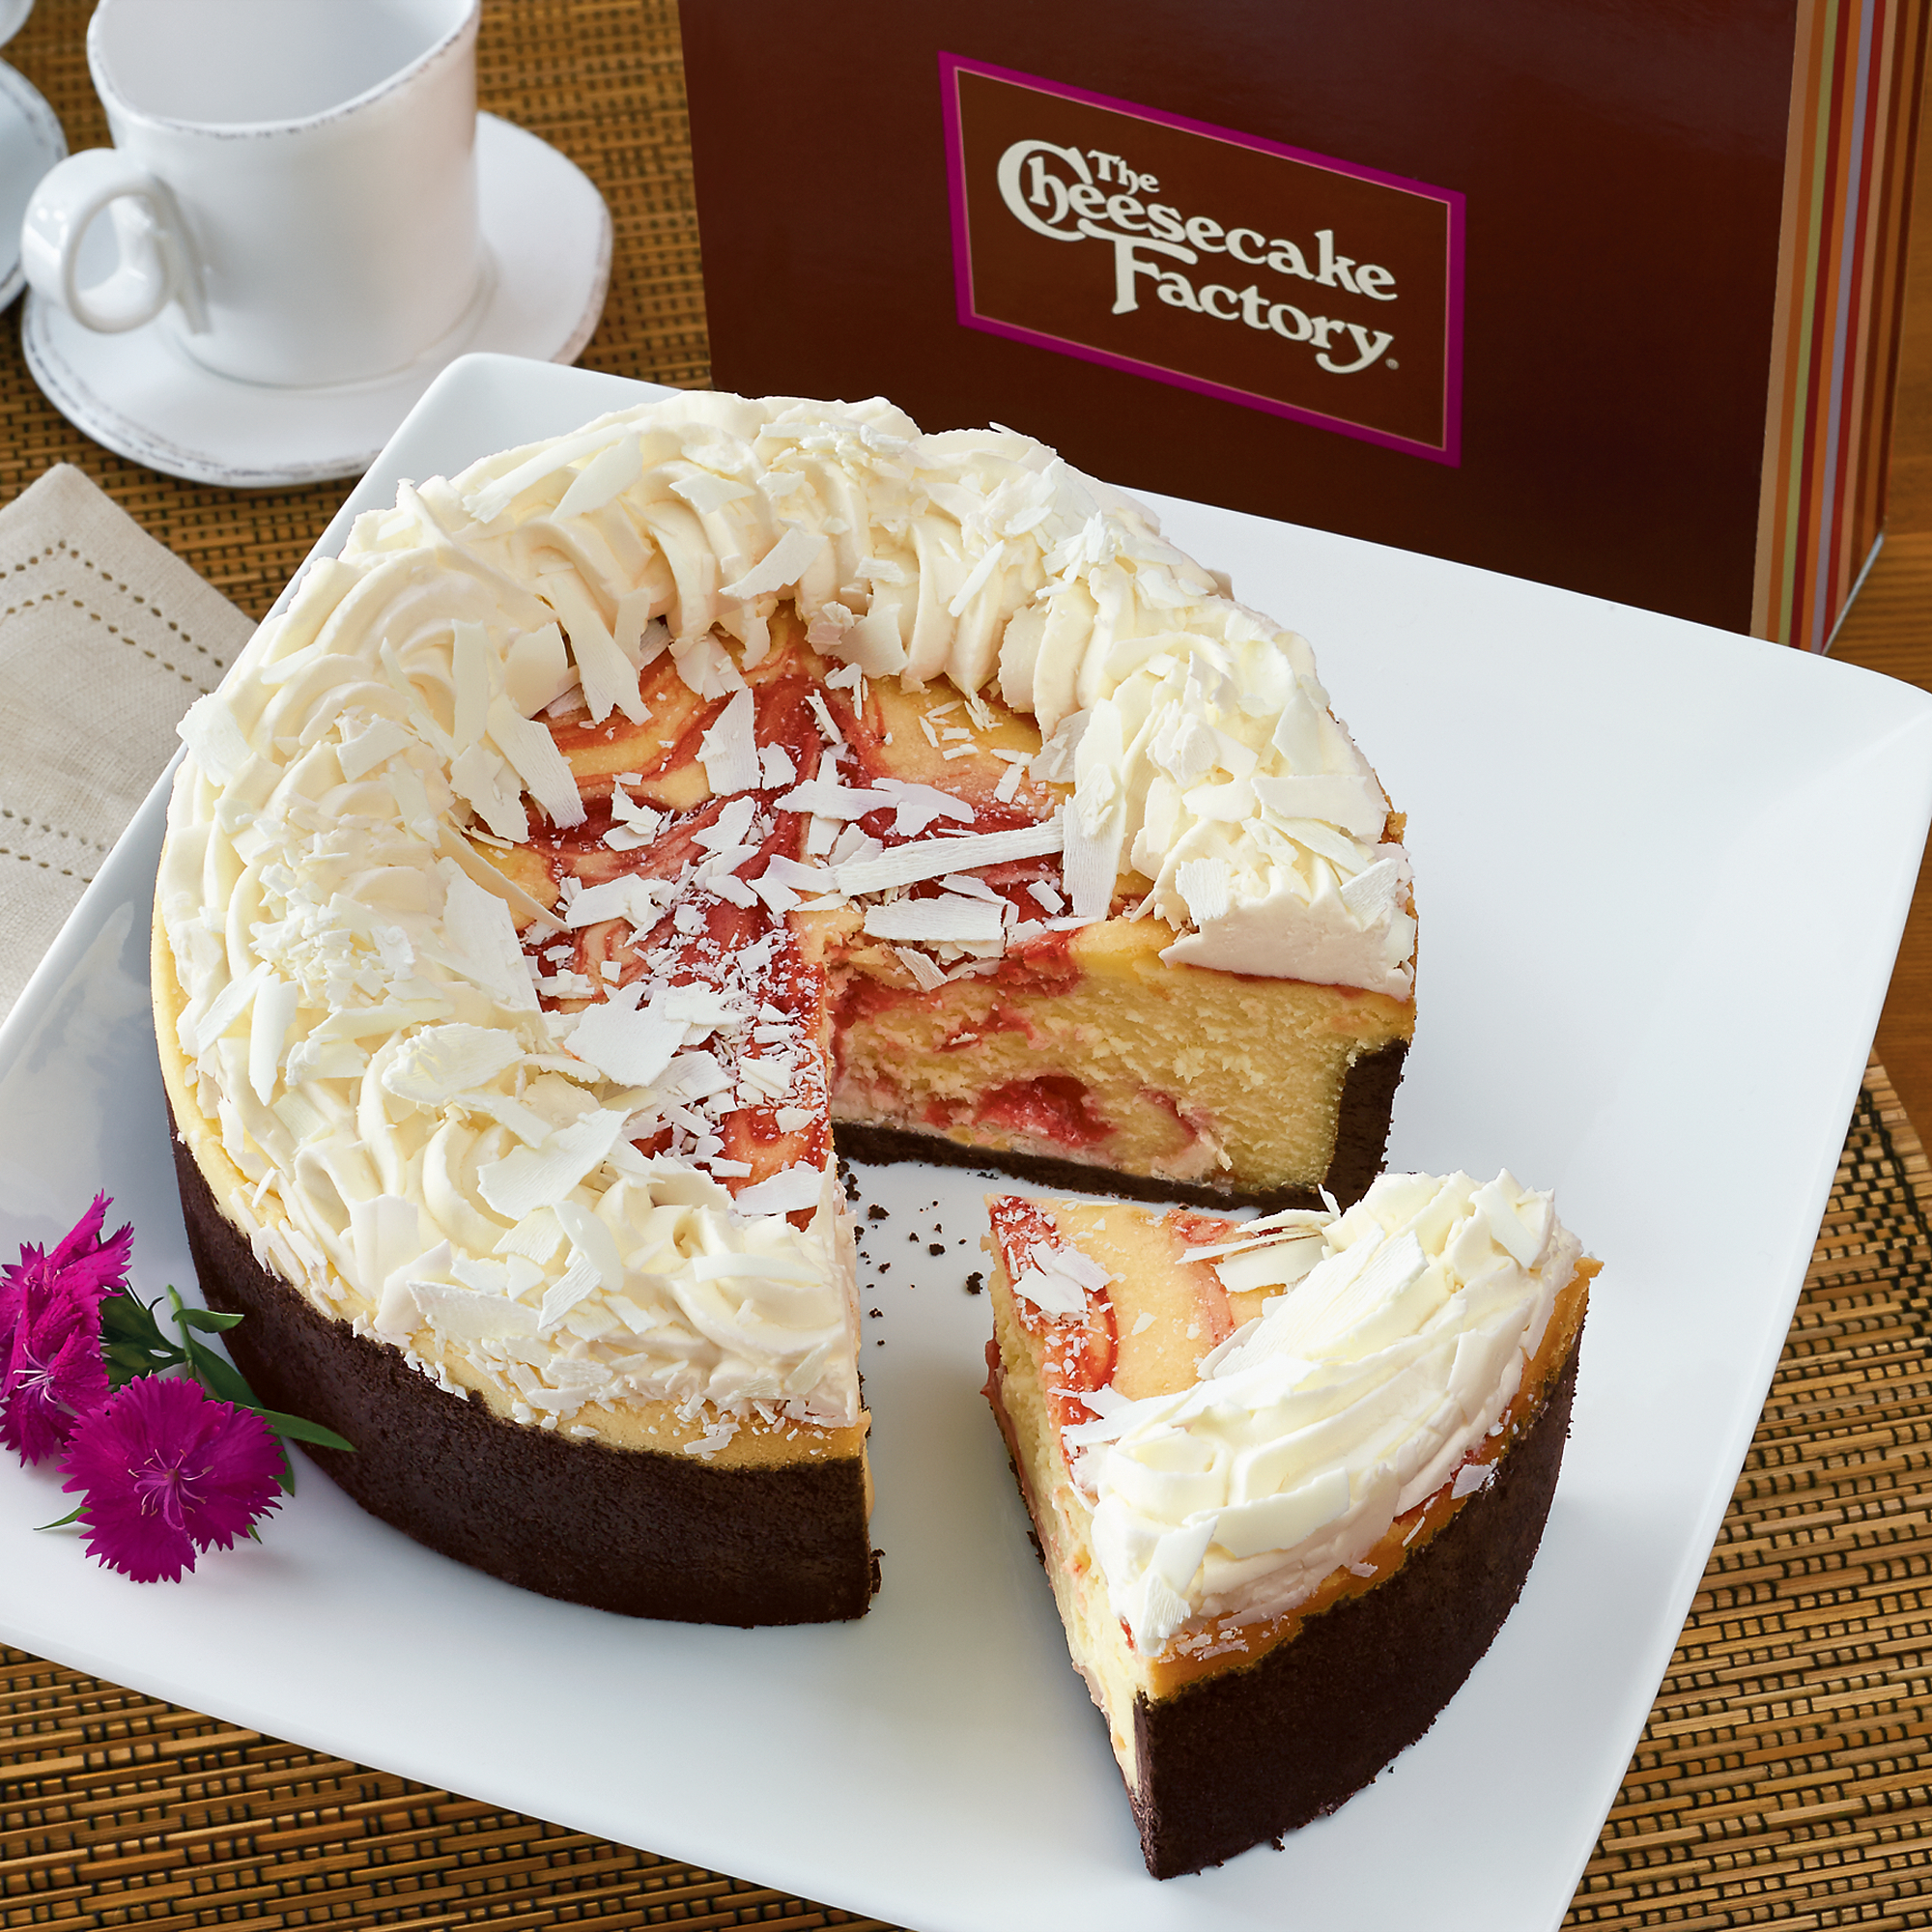 Pin Cheesecake Factory Chocolate Mousse Recipe Cake on